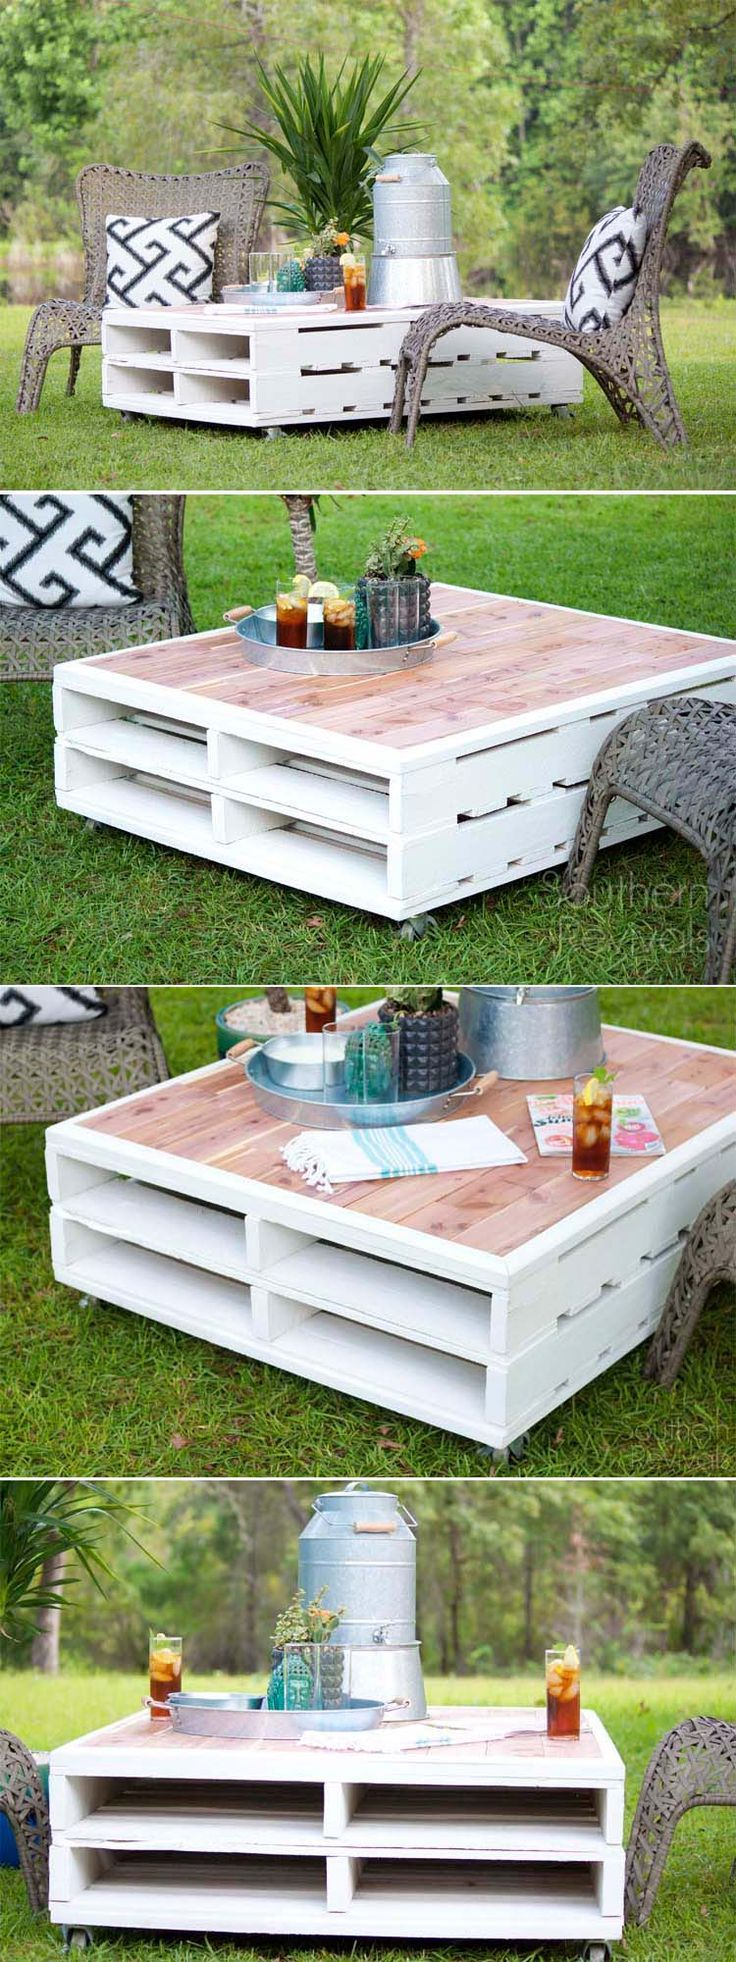 Diy Pallet Coffee Table Gets An Outdoor Makeover Southern Revivals Pallet Furniture Outdoor Outdoor Makeover Pallet Diy